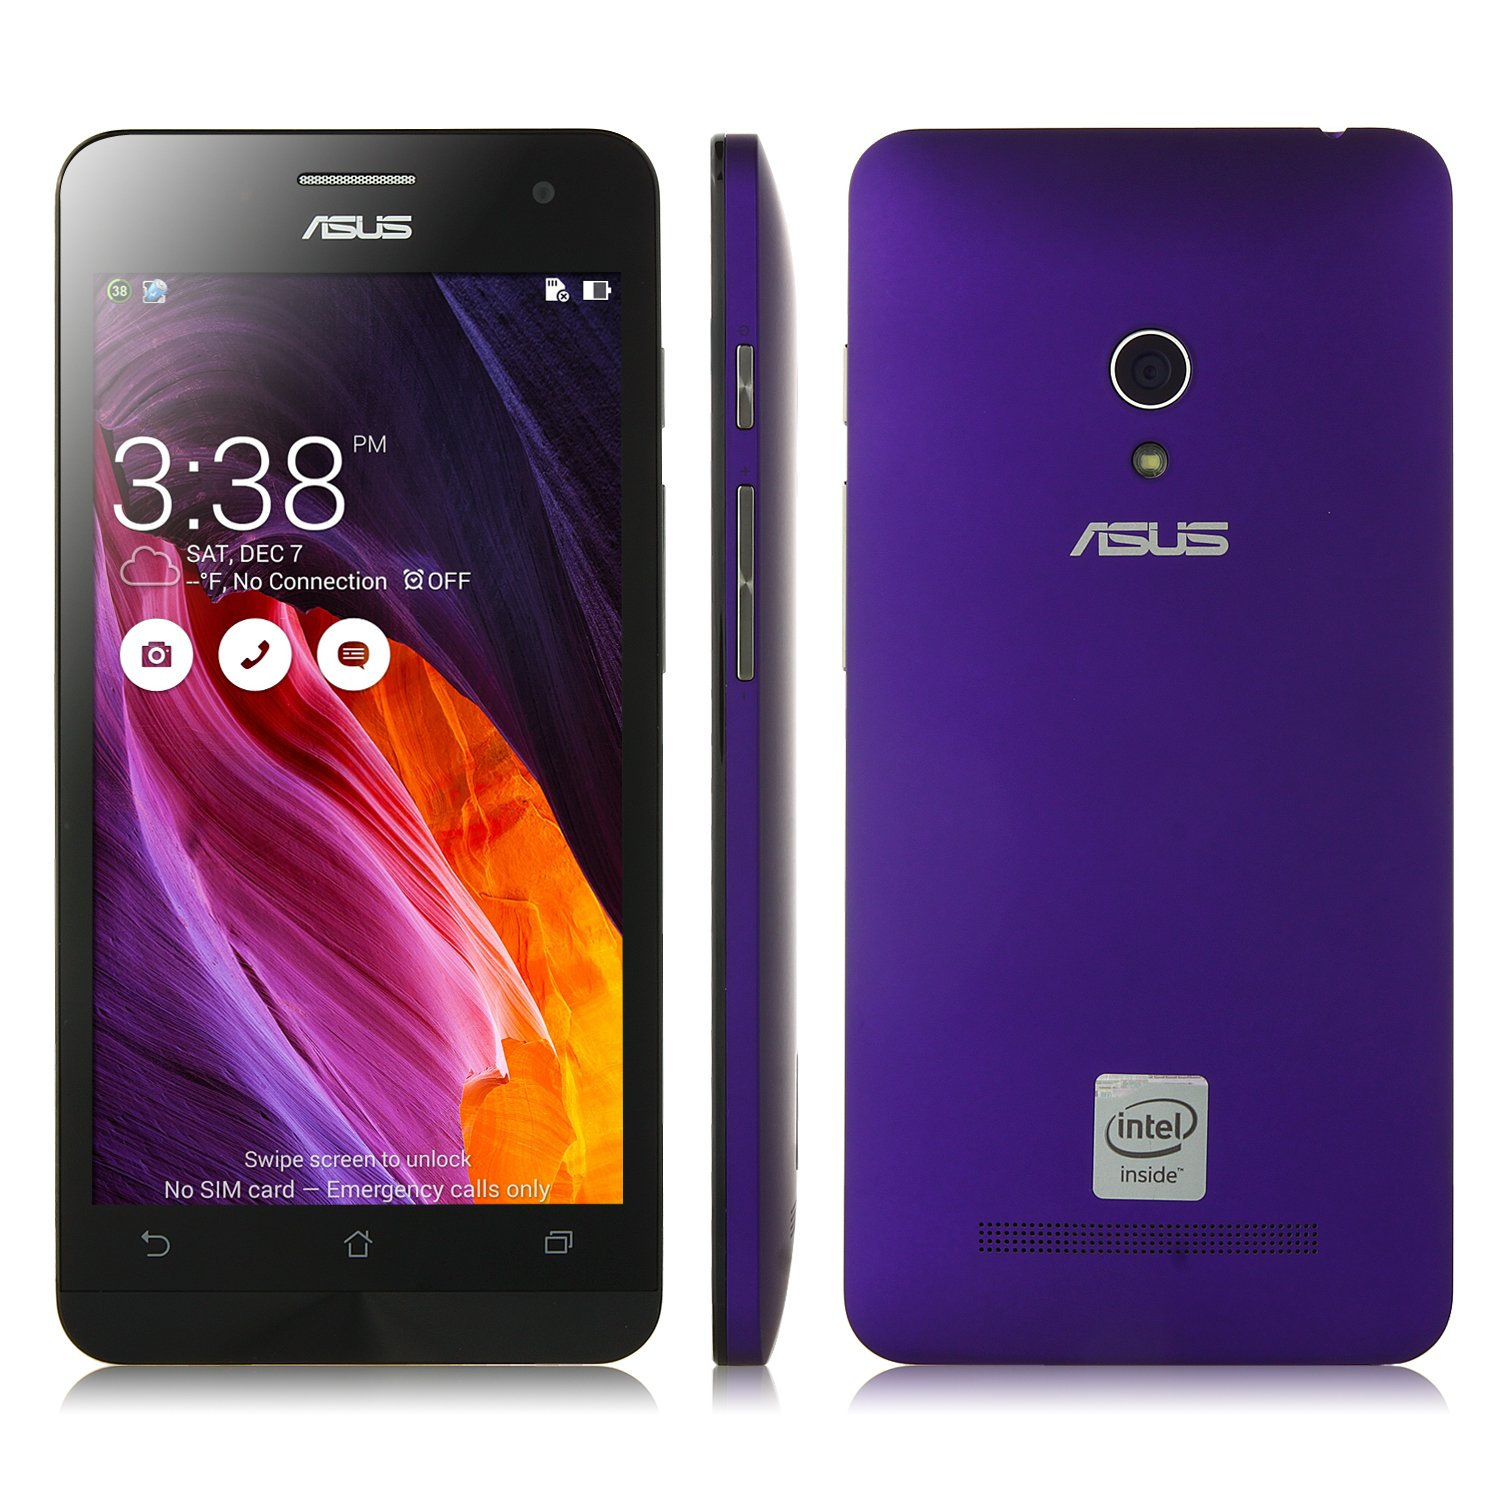 5.0 Pulgada ASUS Zenfone 5 Smartphone Android 4.3 Intel Atom Z2560 ...